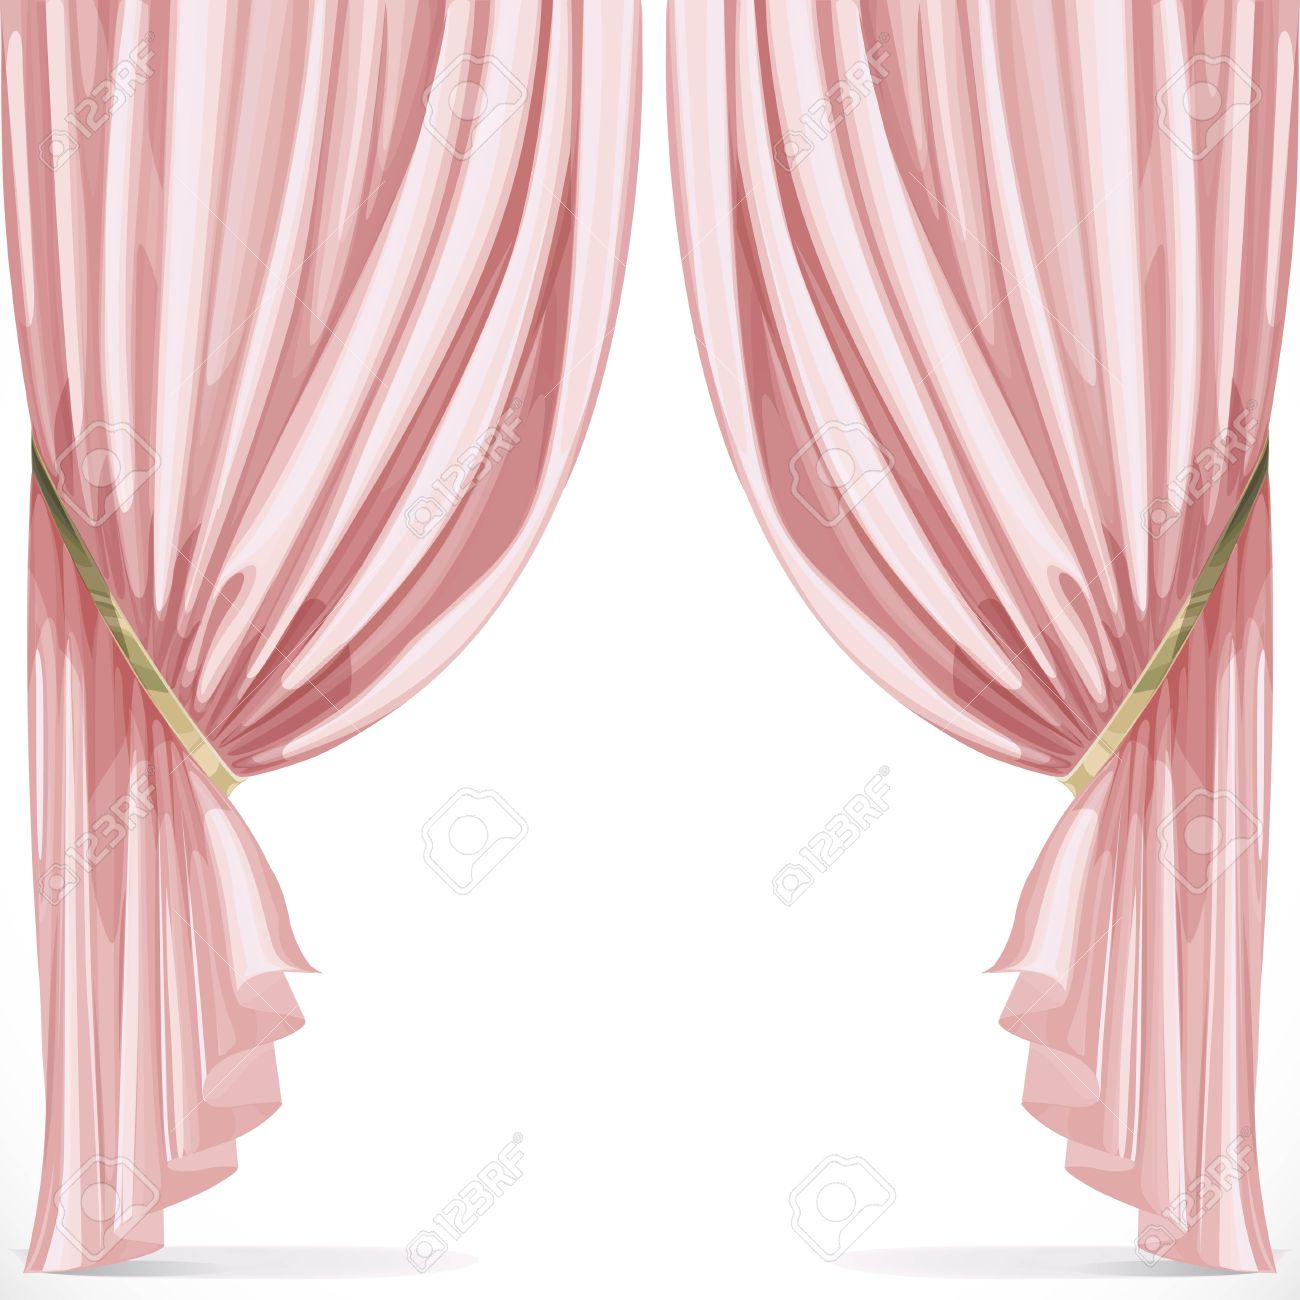 Pink Curtain Collected In Folds Ribbon Isolated On A White ... for Pink Curtains Background  535wja